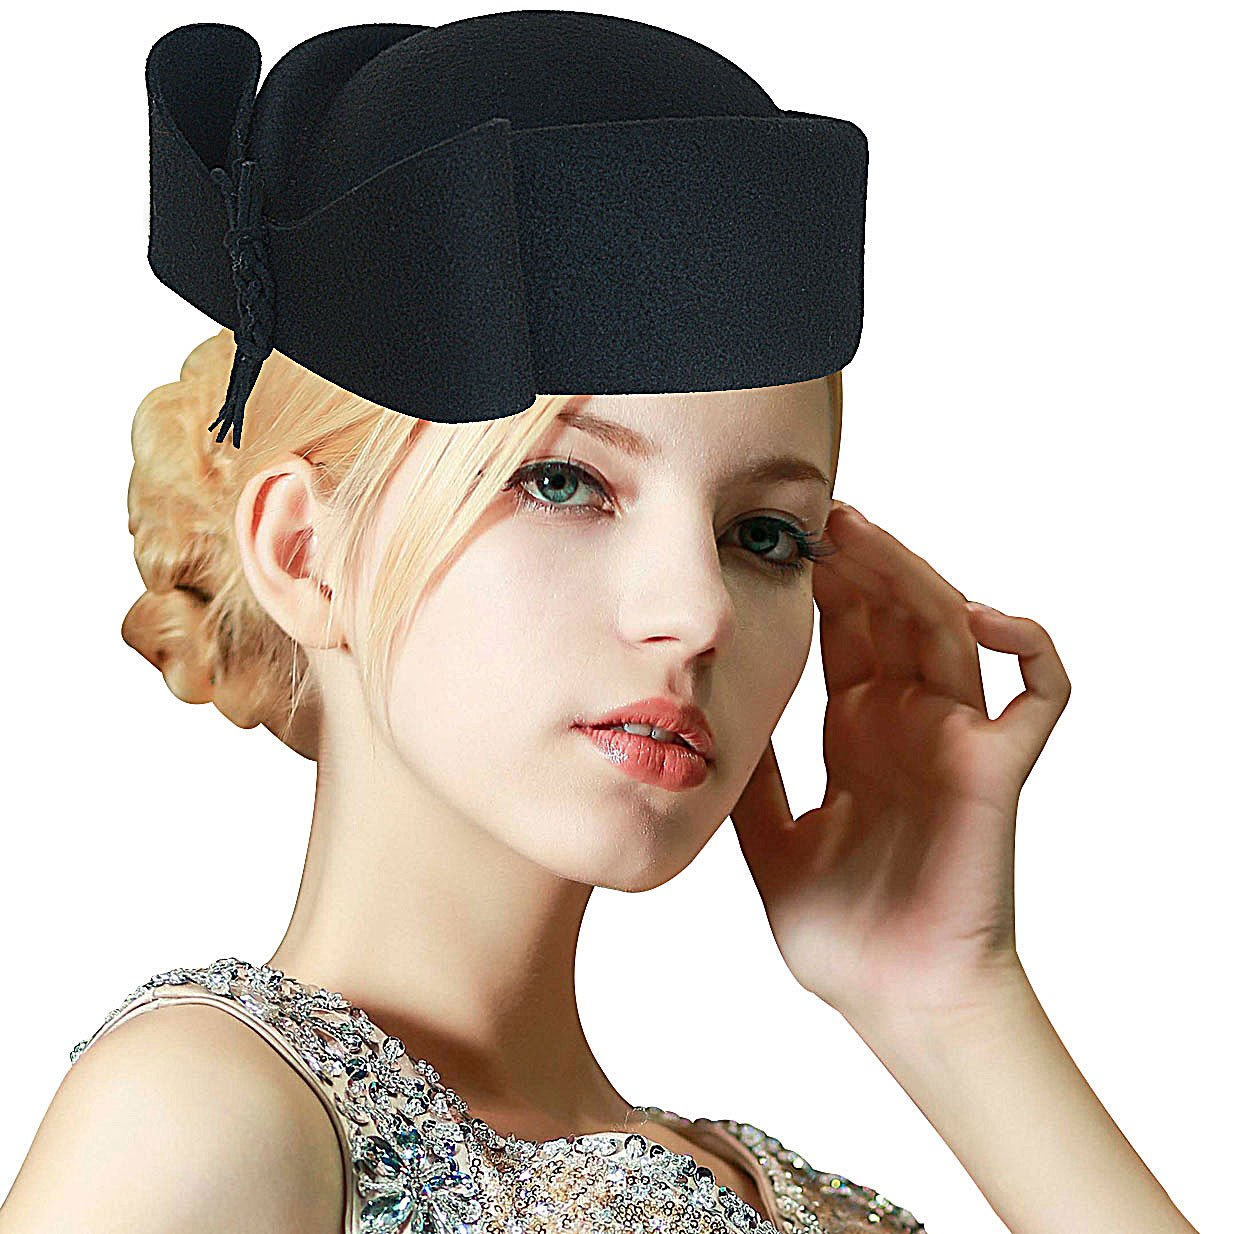 d9d1986c2e95e Lawliet Ladies Teardrop Fancy Wool Fascinator Cocktail Pillbox Hat Formal  Racing A253 (Black) at Amazon Women s Clothing store